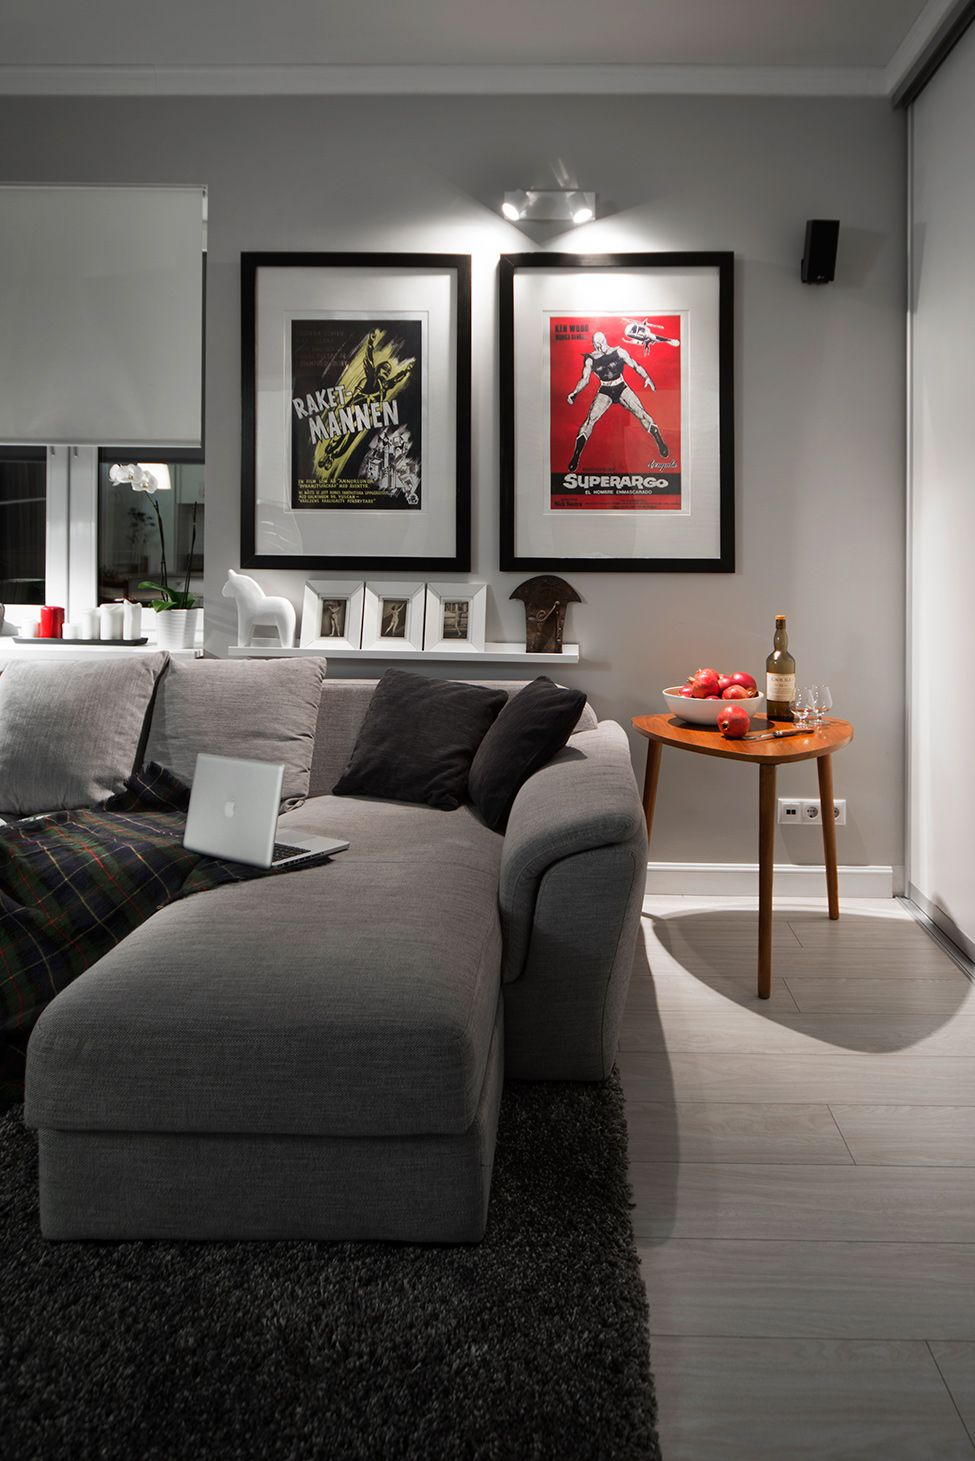 compact bachelor haven in moscow living | Compact Bachelor Haven in Moscow Defined by the Mix of ...